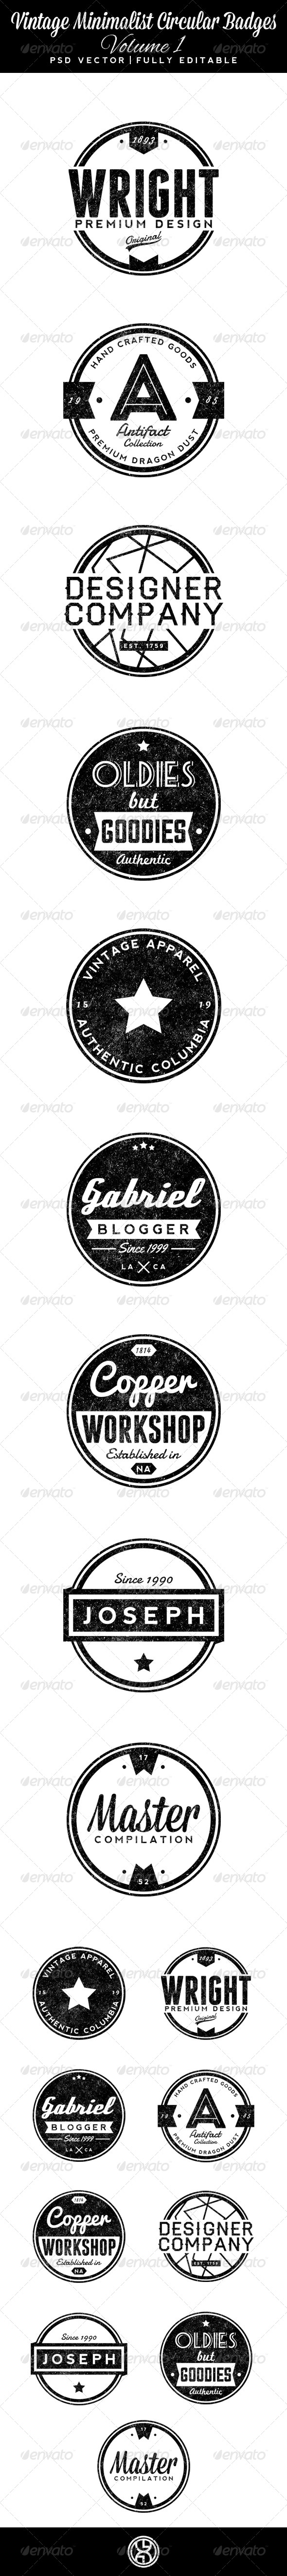 GraphicRiver Vintage Minimalist Circular Badges Volume 1 6386915